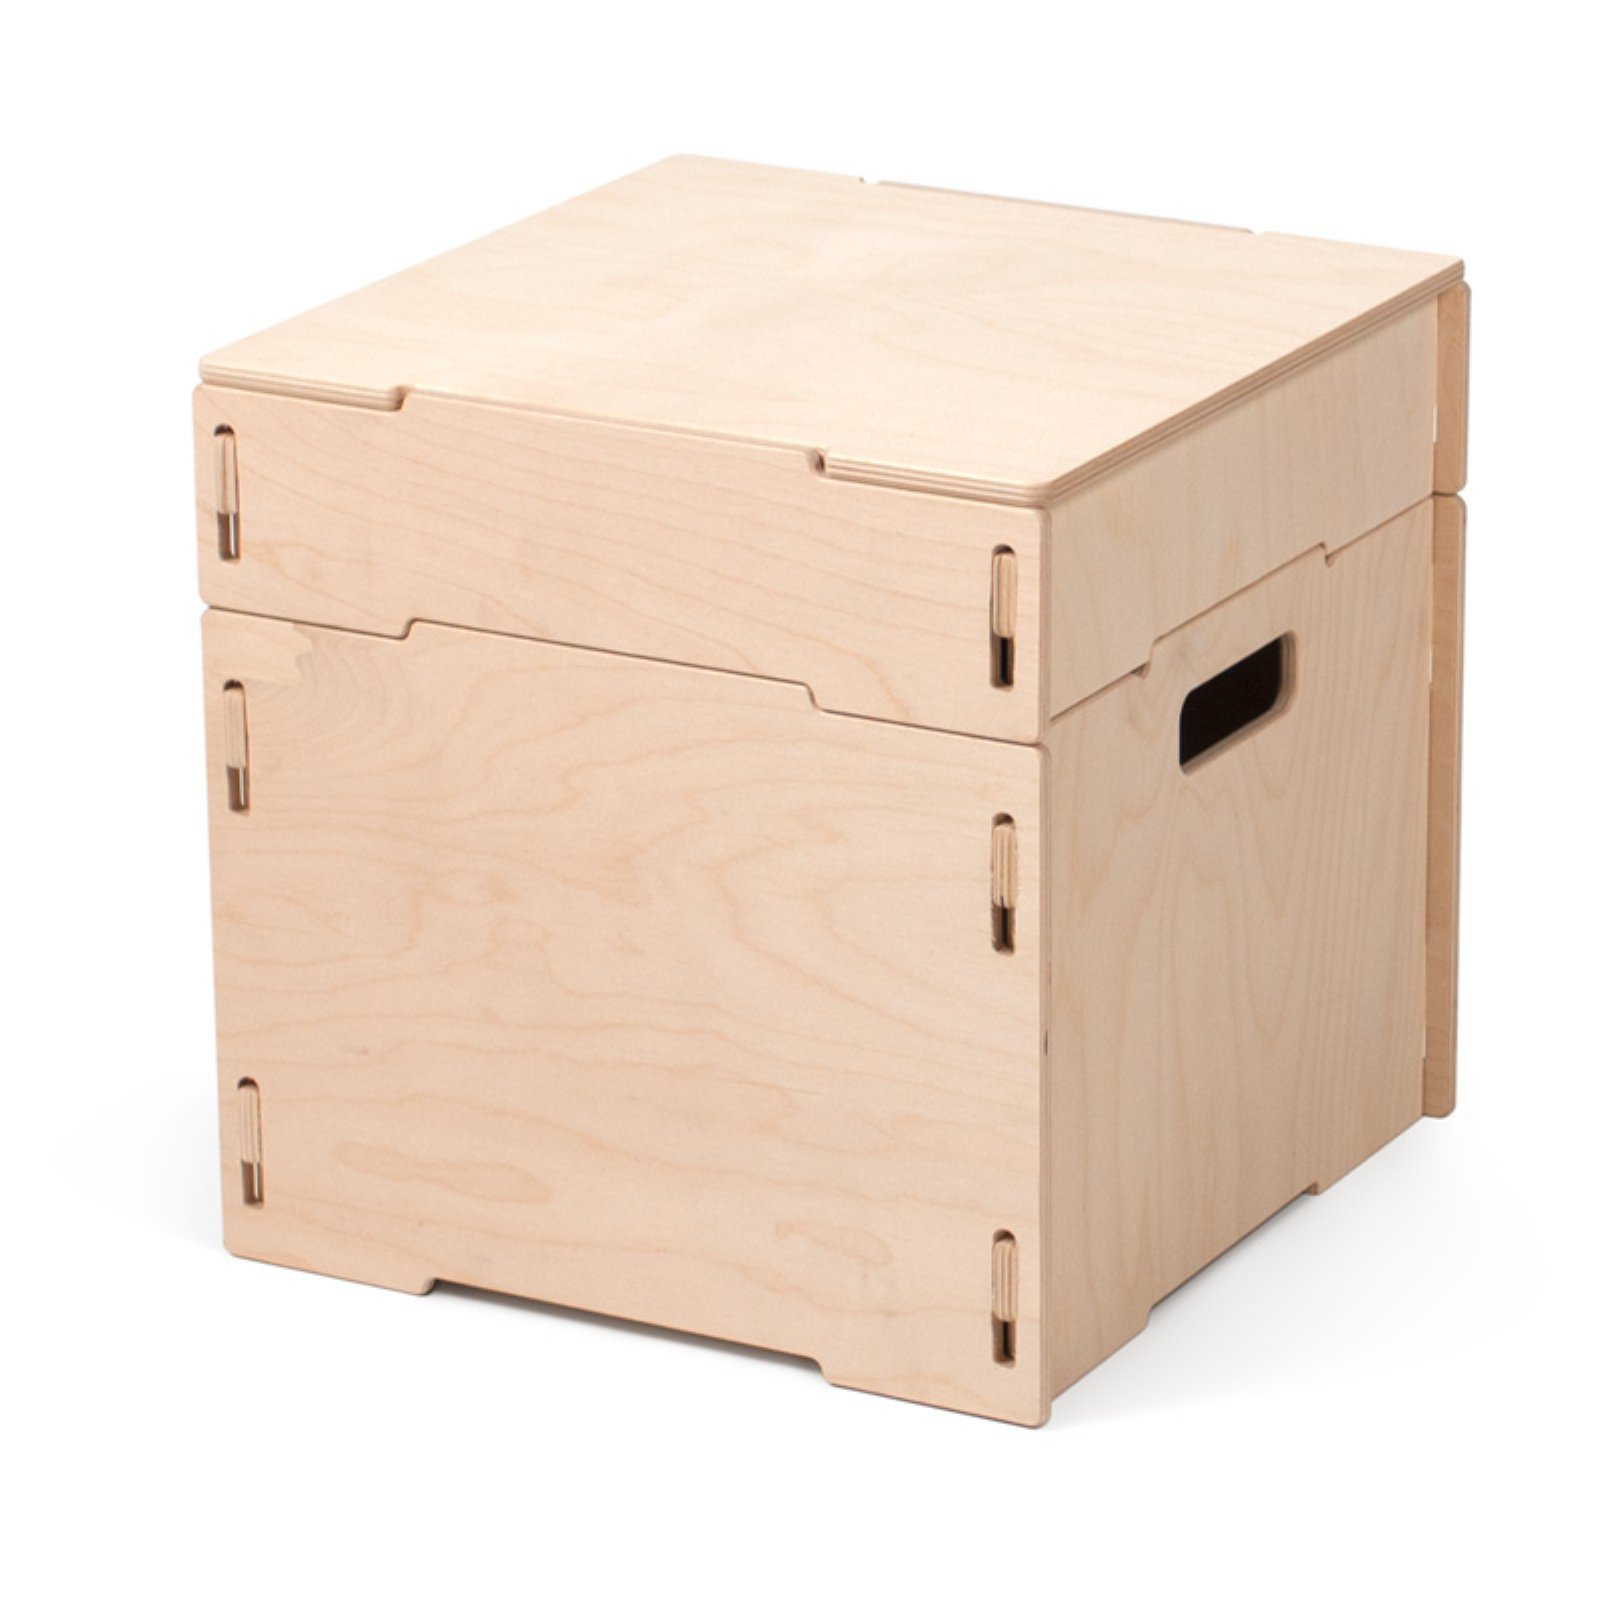 Ordinaire Sprout Small Square Wooden Storage Ottoman